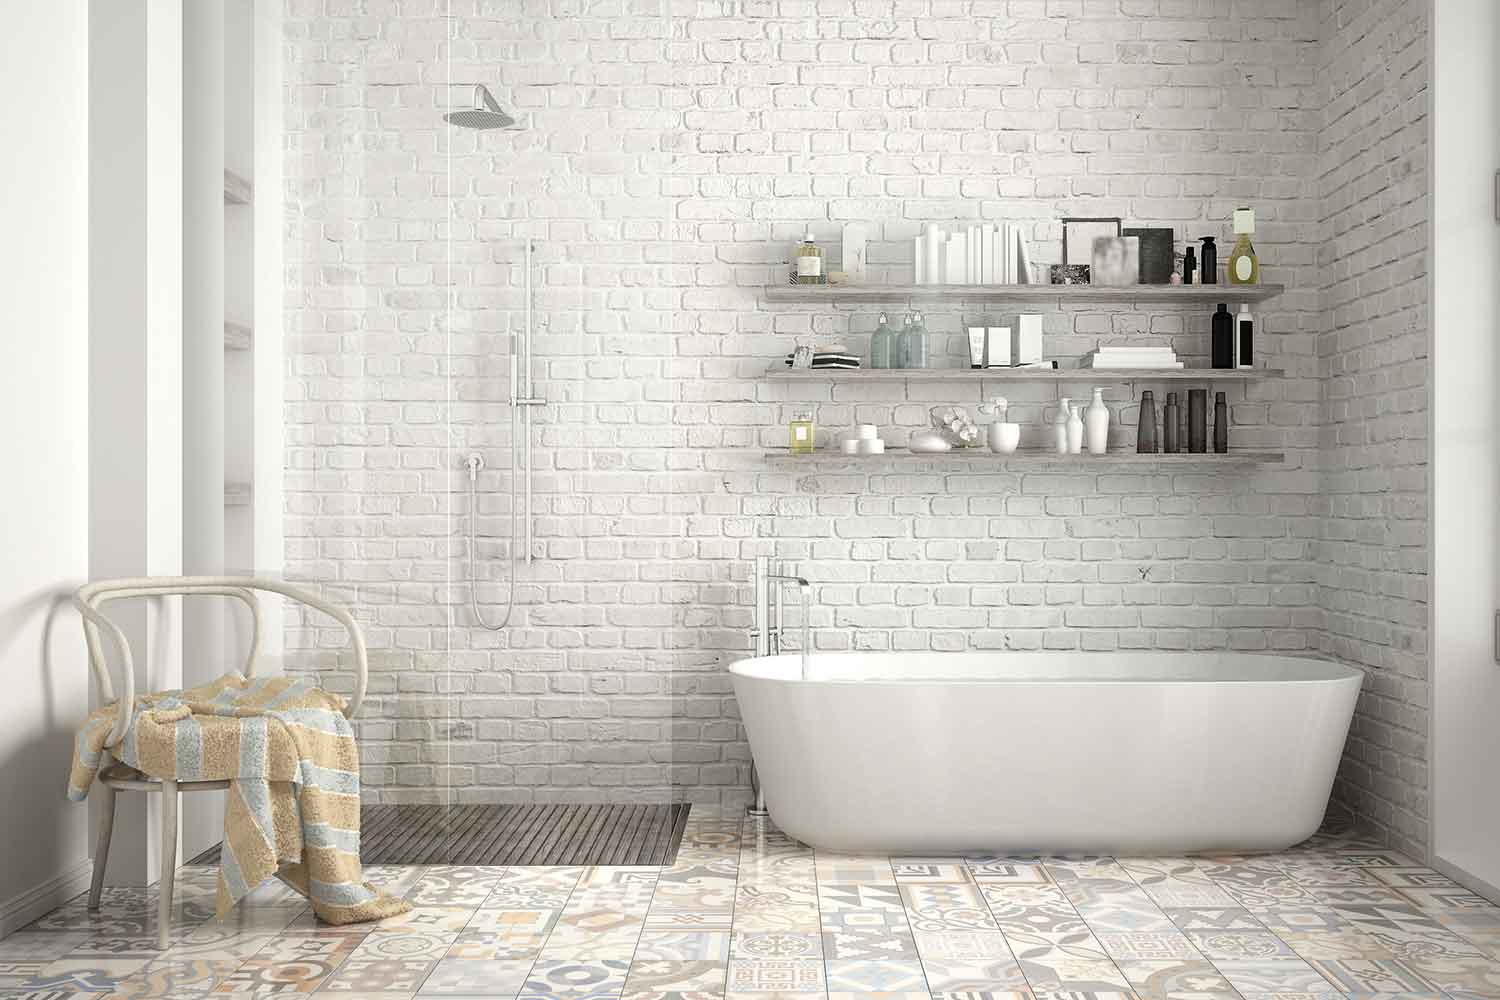 Budget Bathroom Renovations How To Keep Your Costs Down